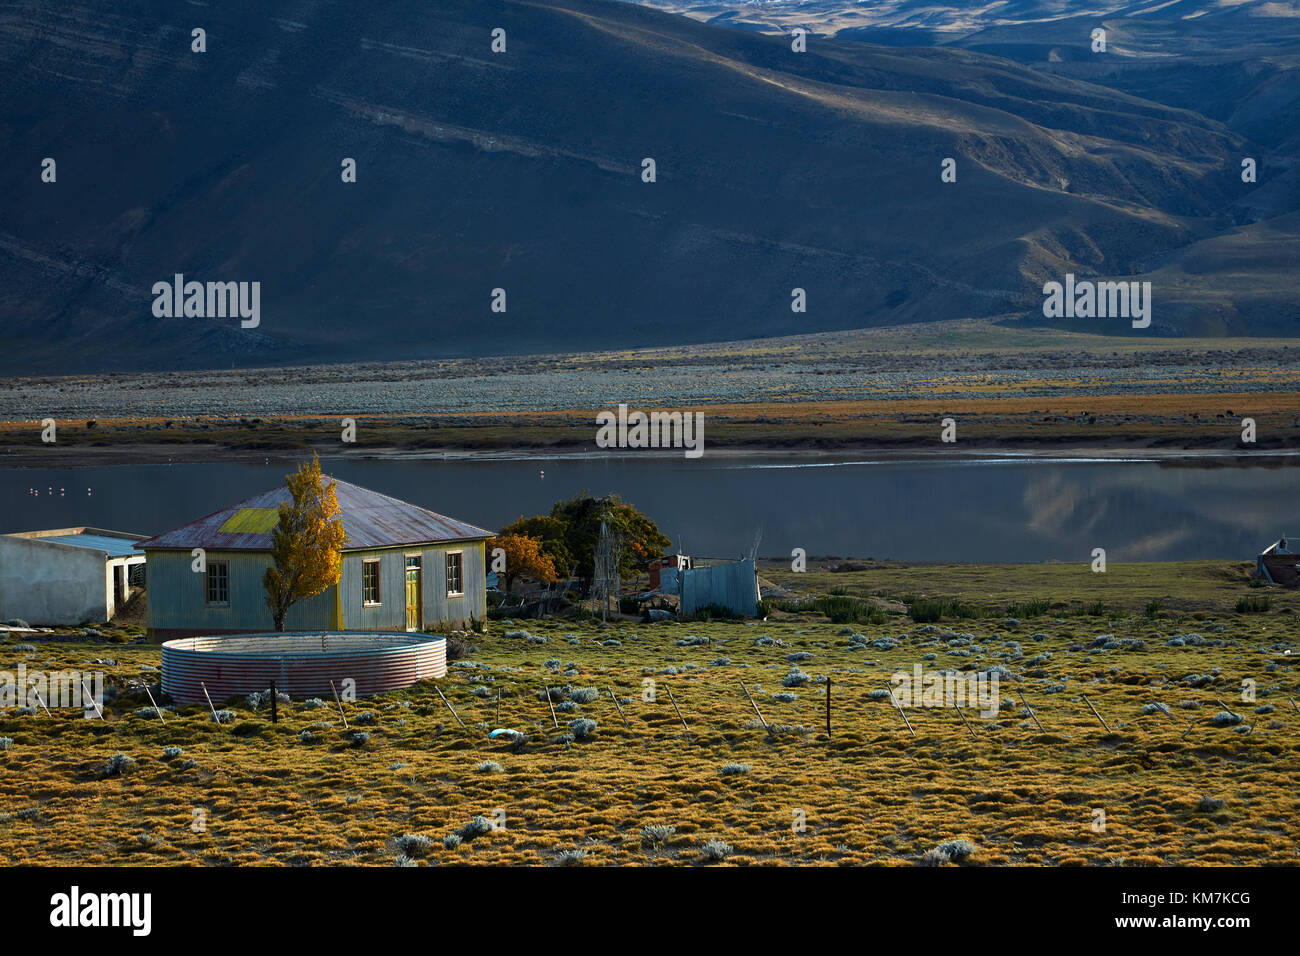 Old corrugated steel farmhouse and small lake near El Chalten, Patagonia, Argentina, South America - Stock Image